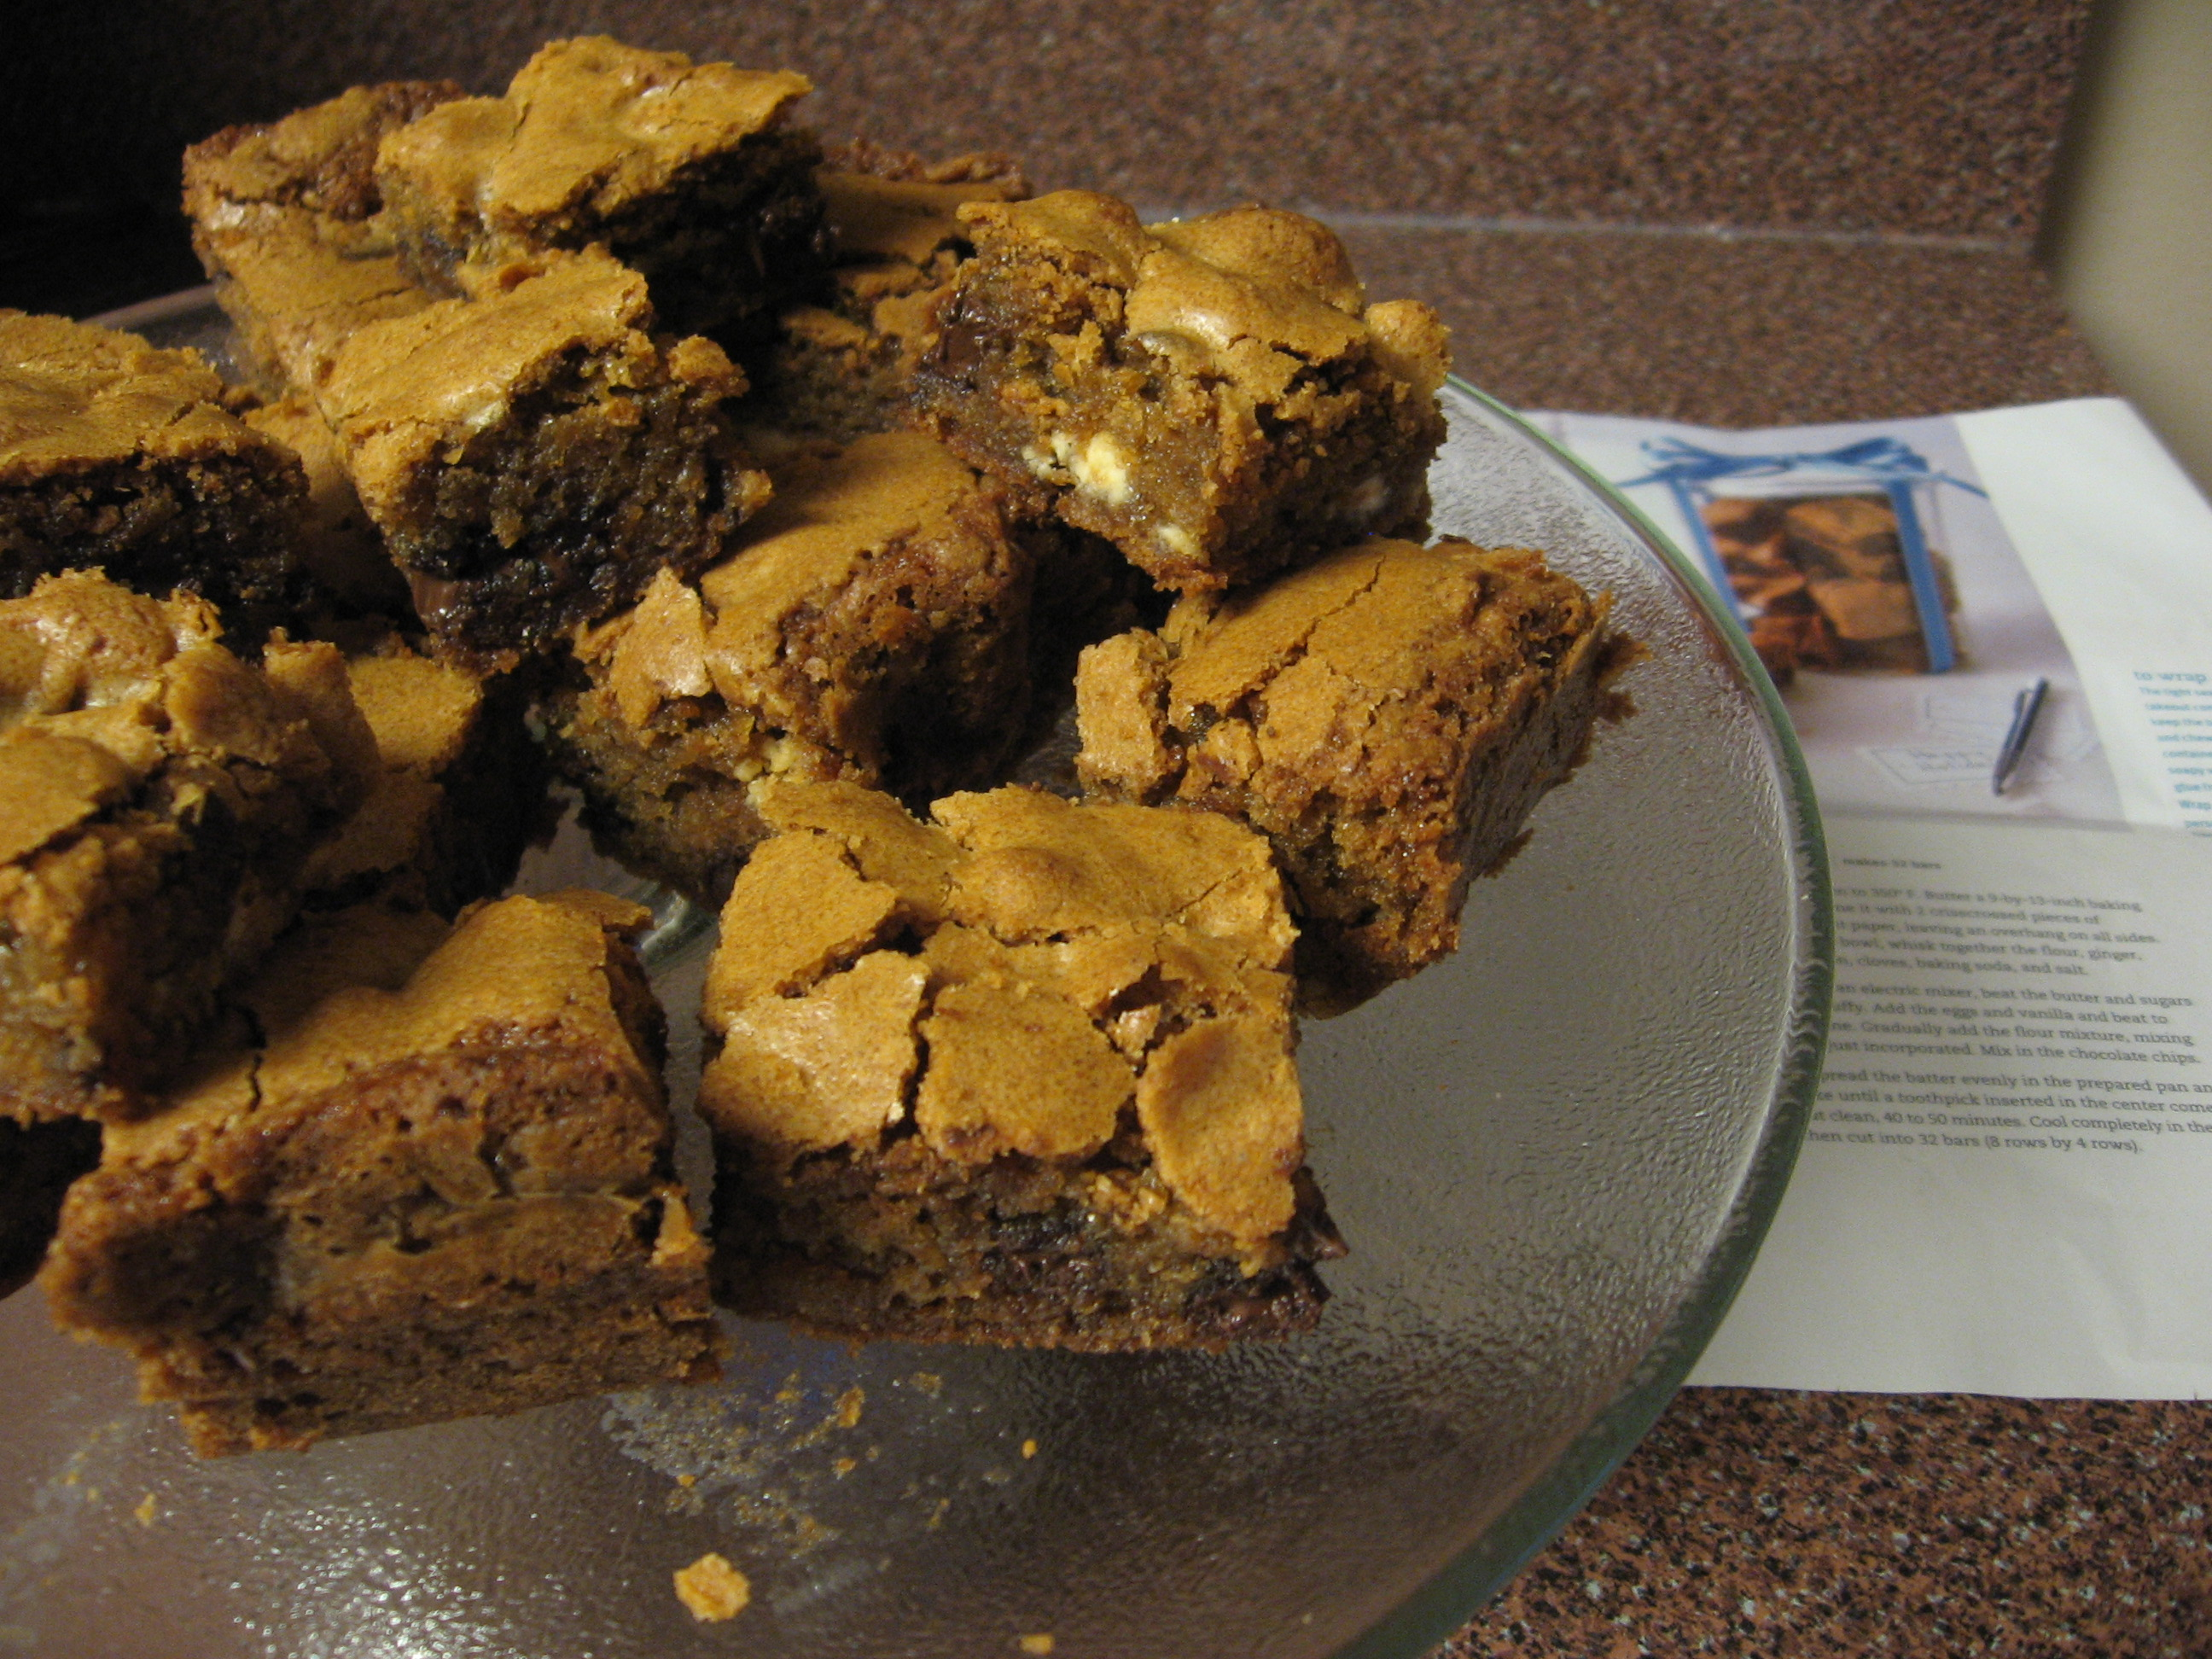 Ginger chocolate chip bars